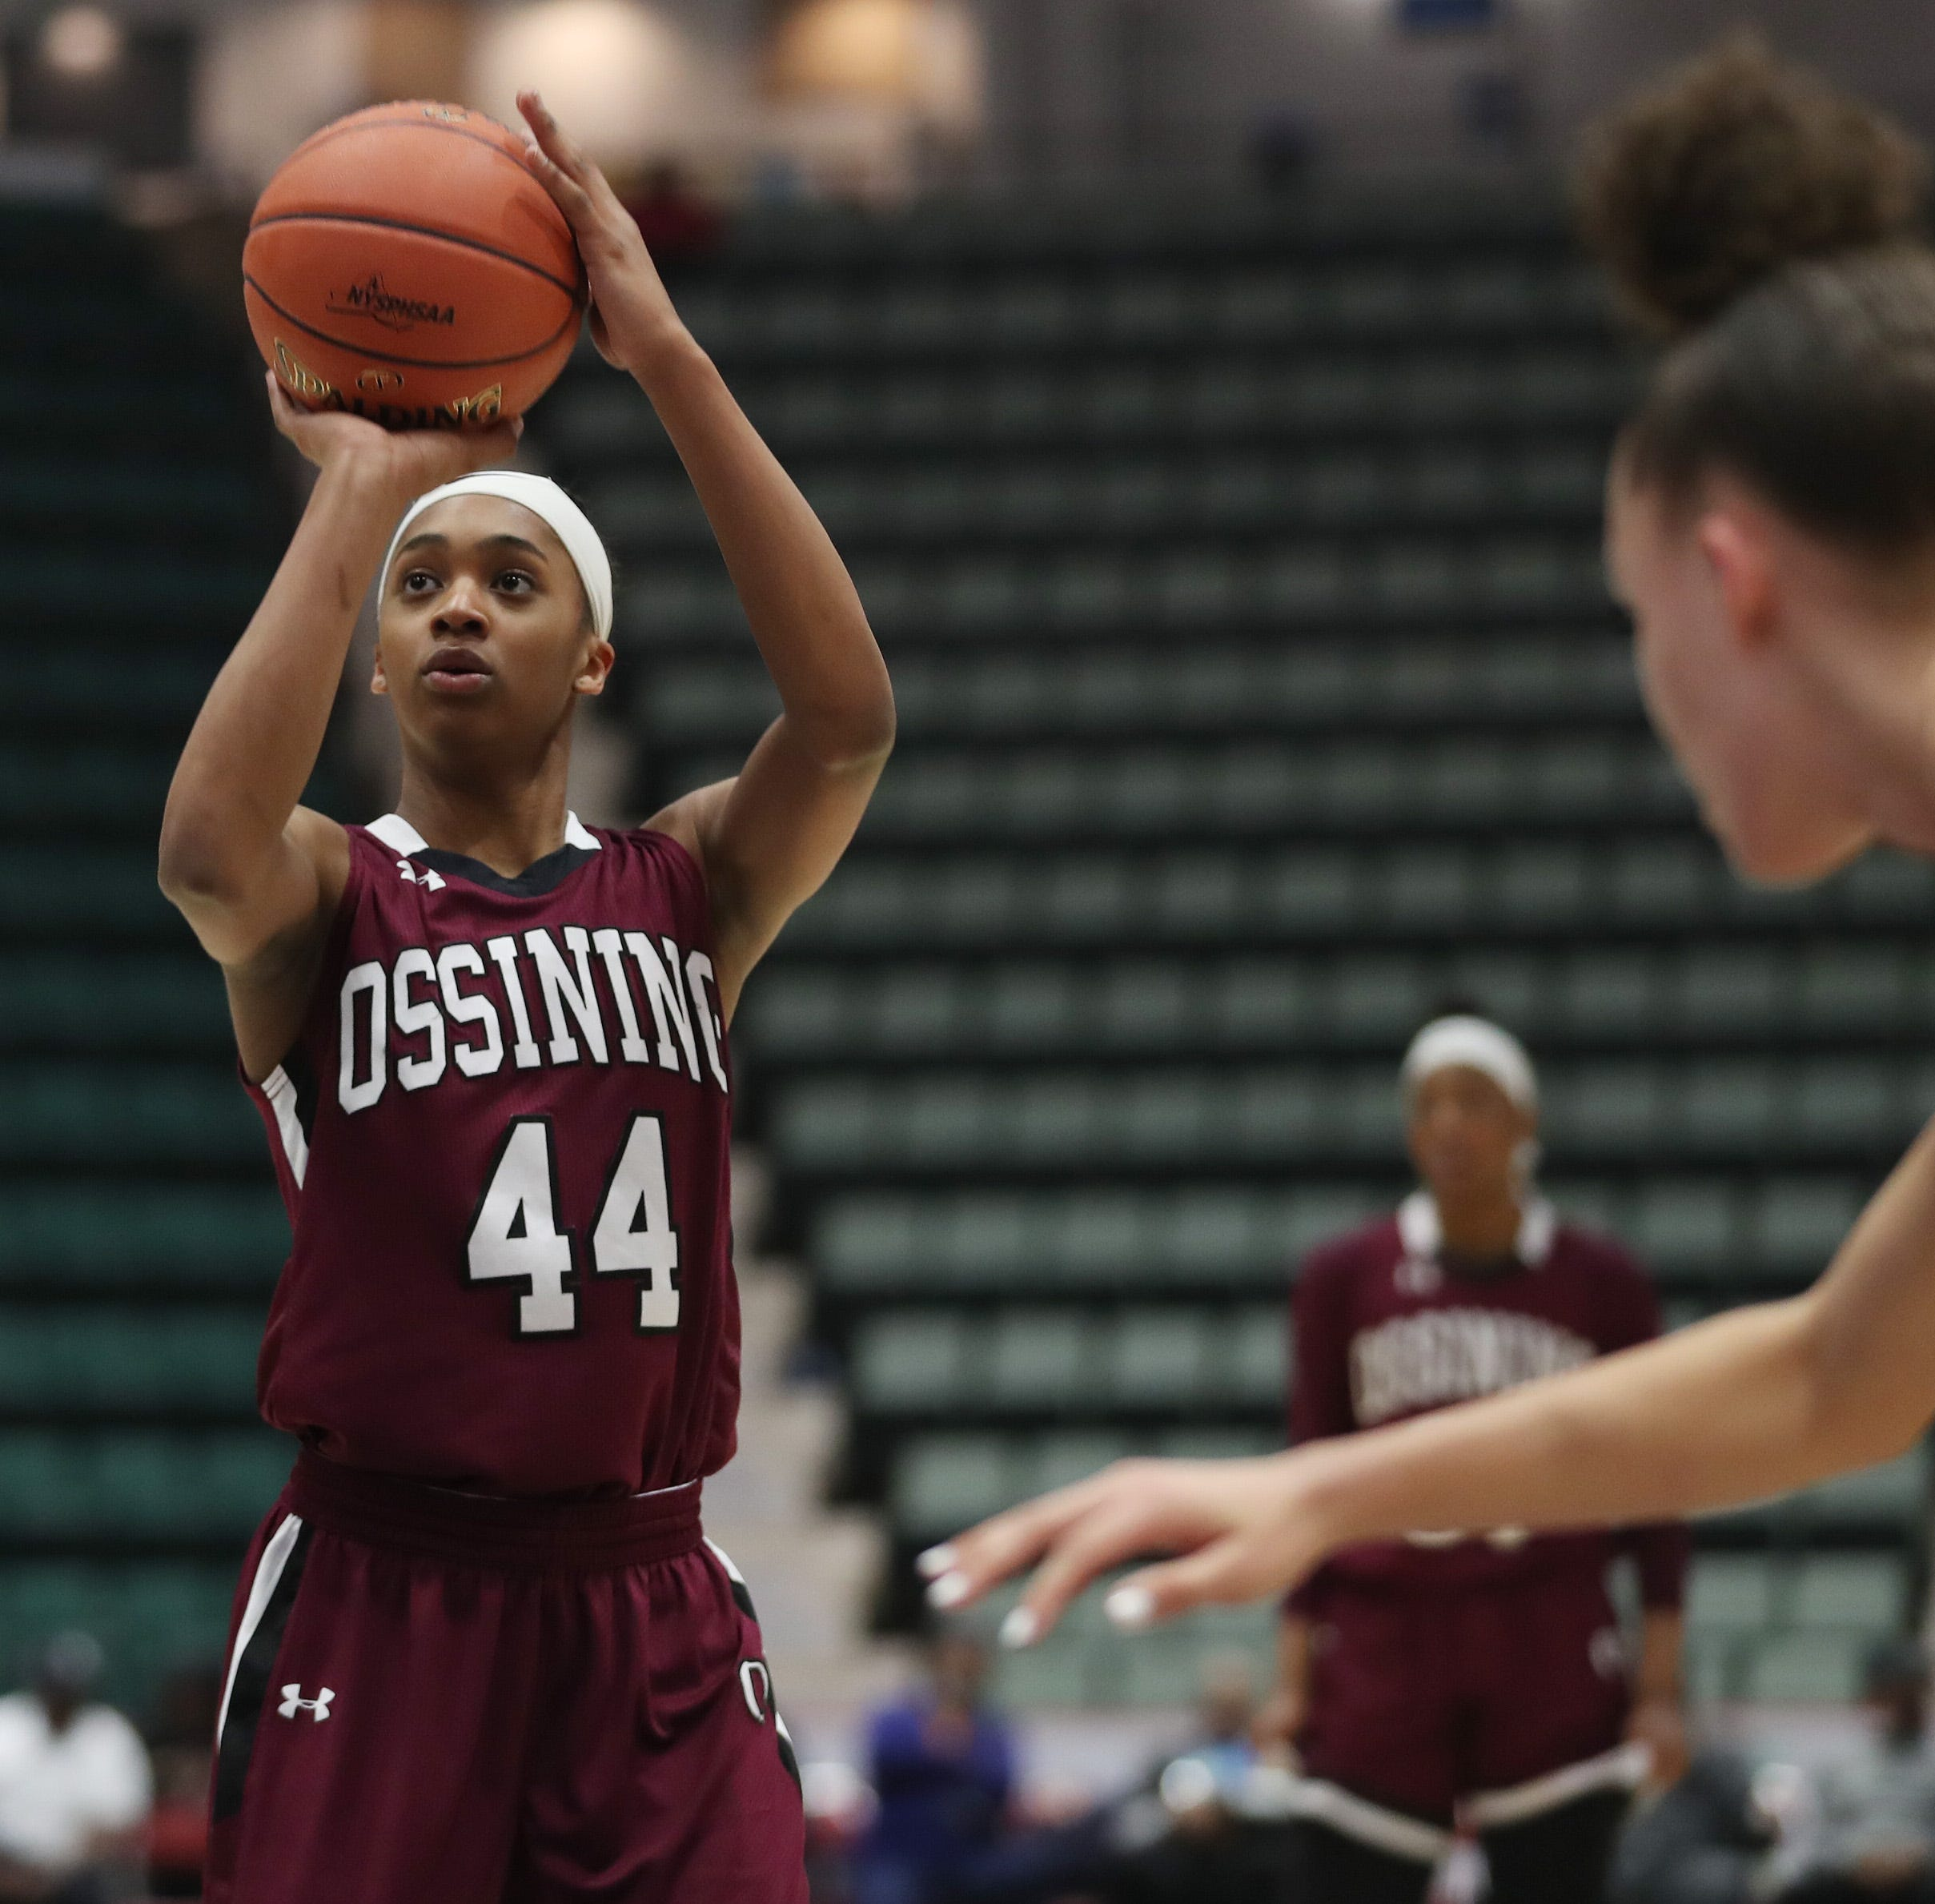 Girls basketball: 2019 all-state teams announced